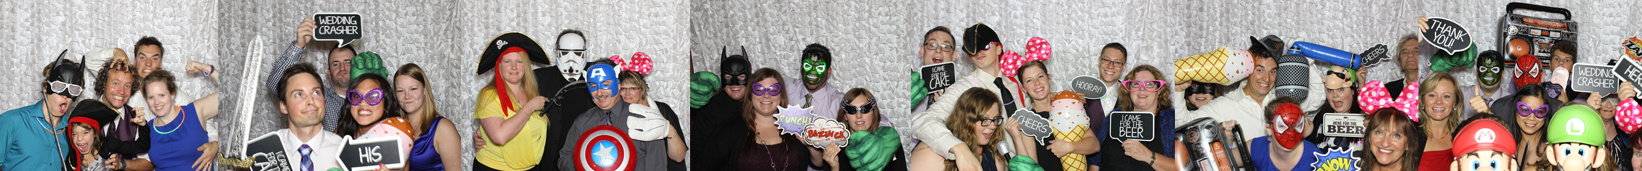 Photo Booth Banner